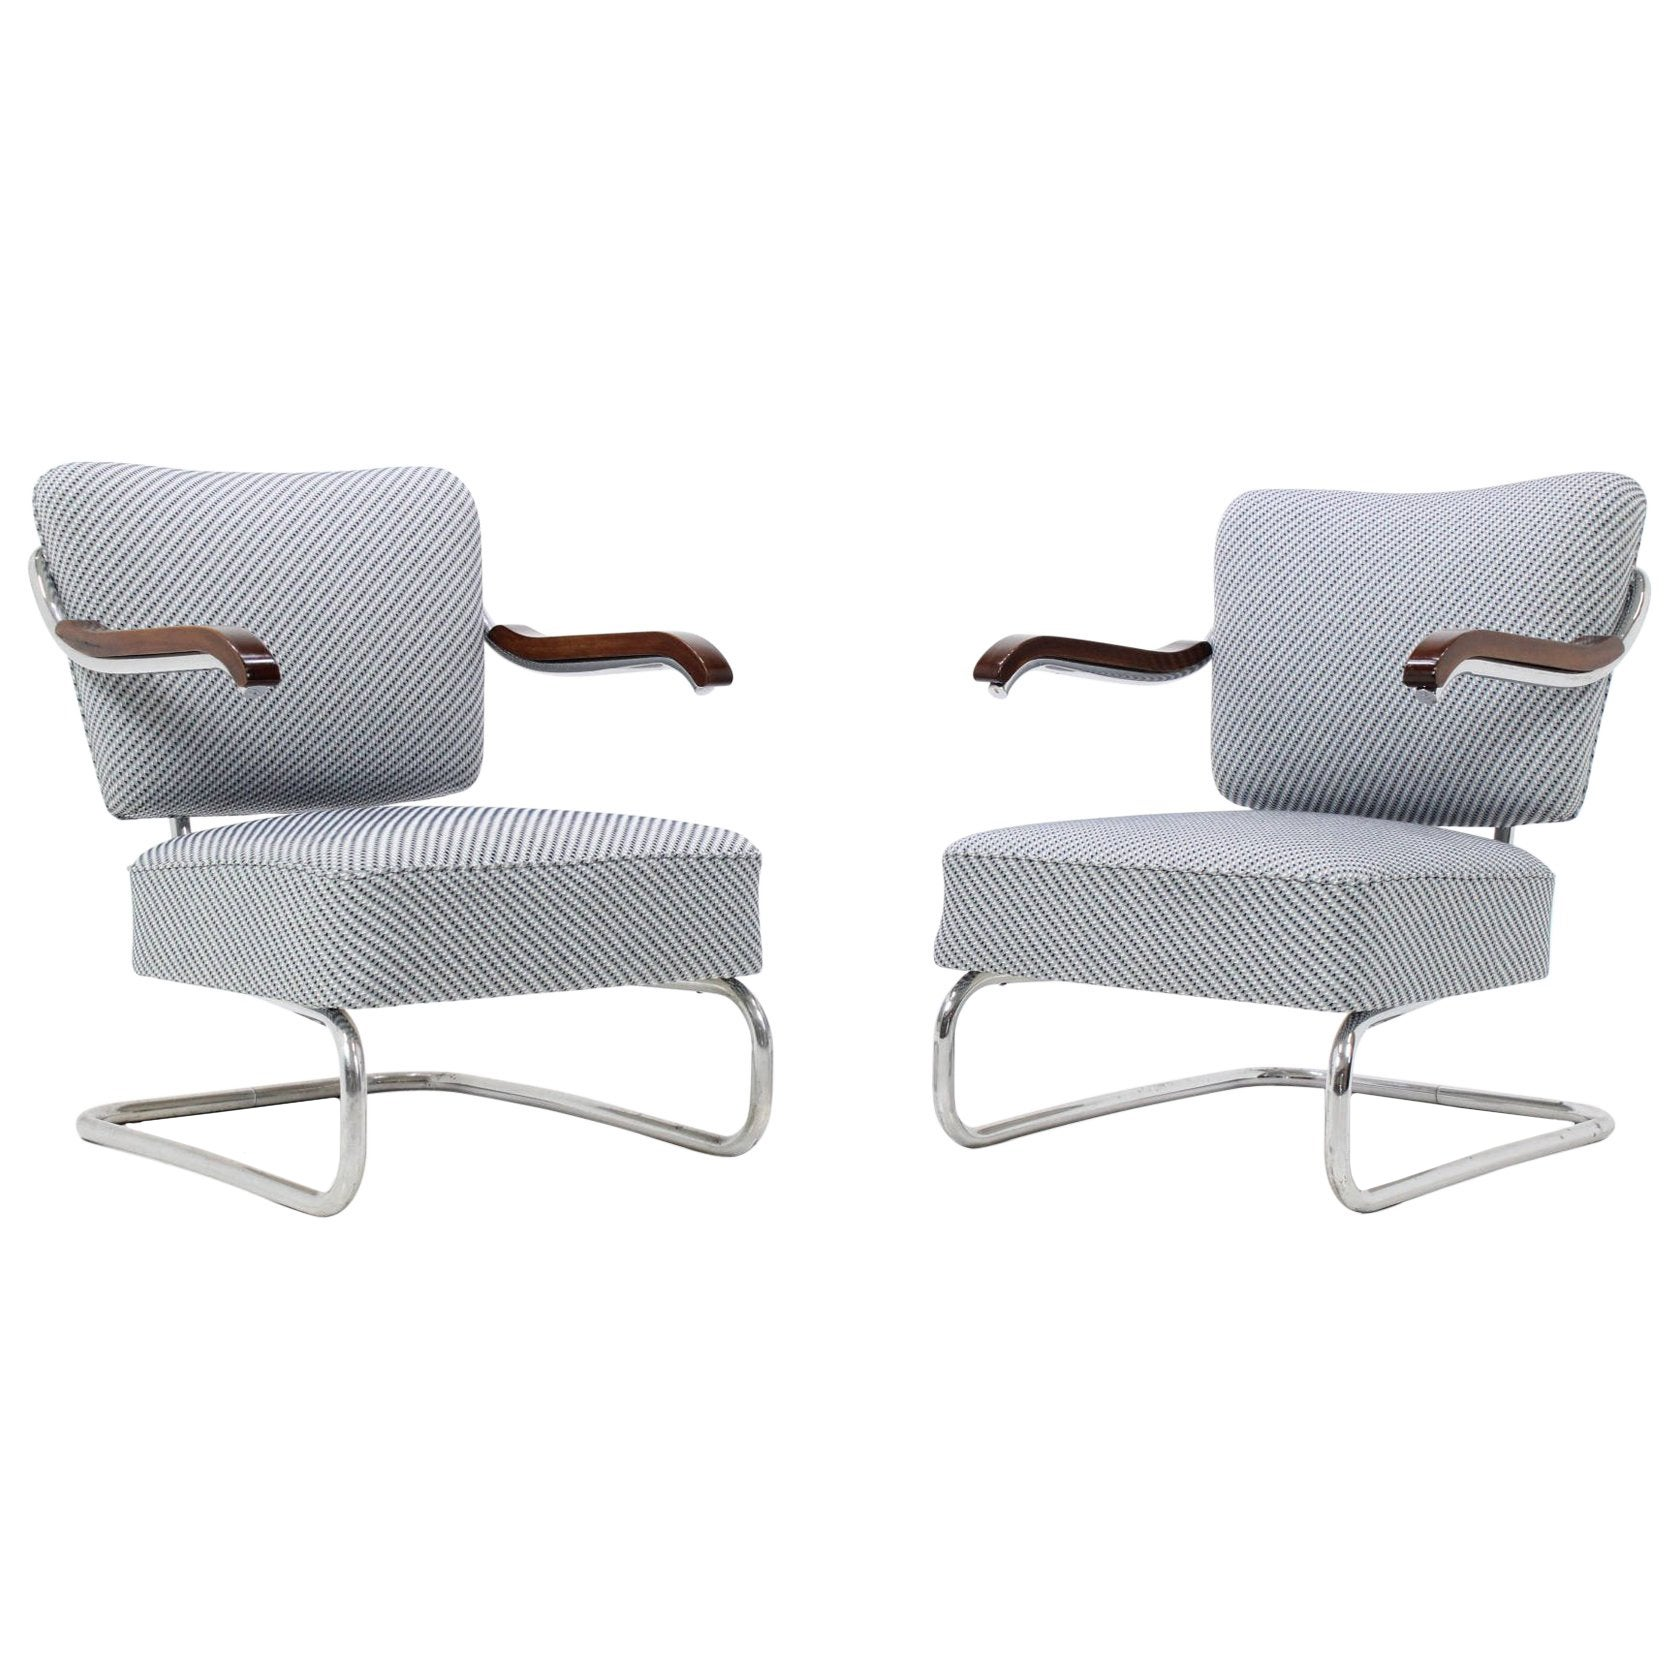 Pair Of 1930 Bauhaus Tubular Steel Armchairs By M Cke